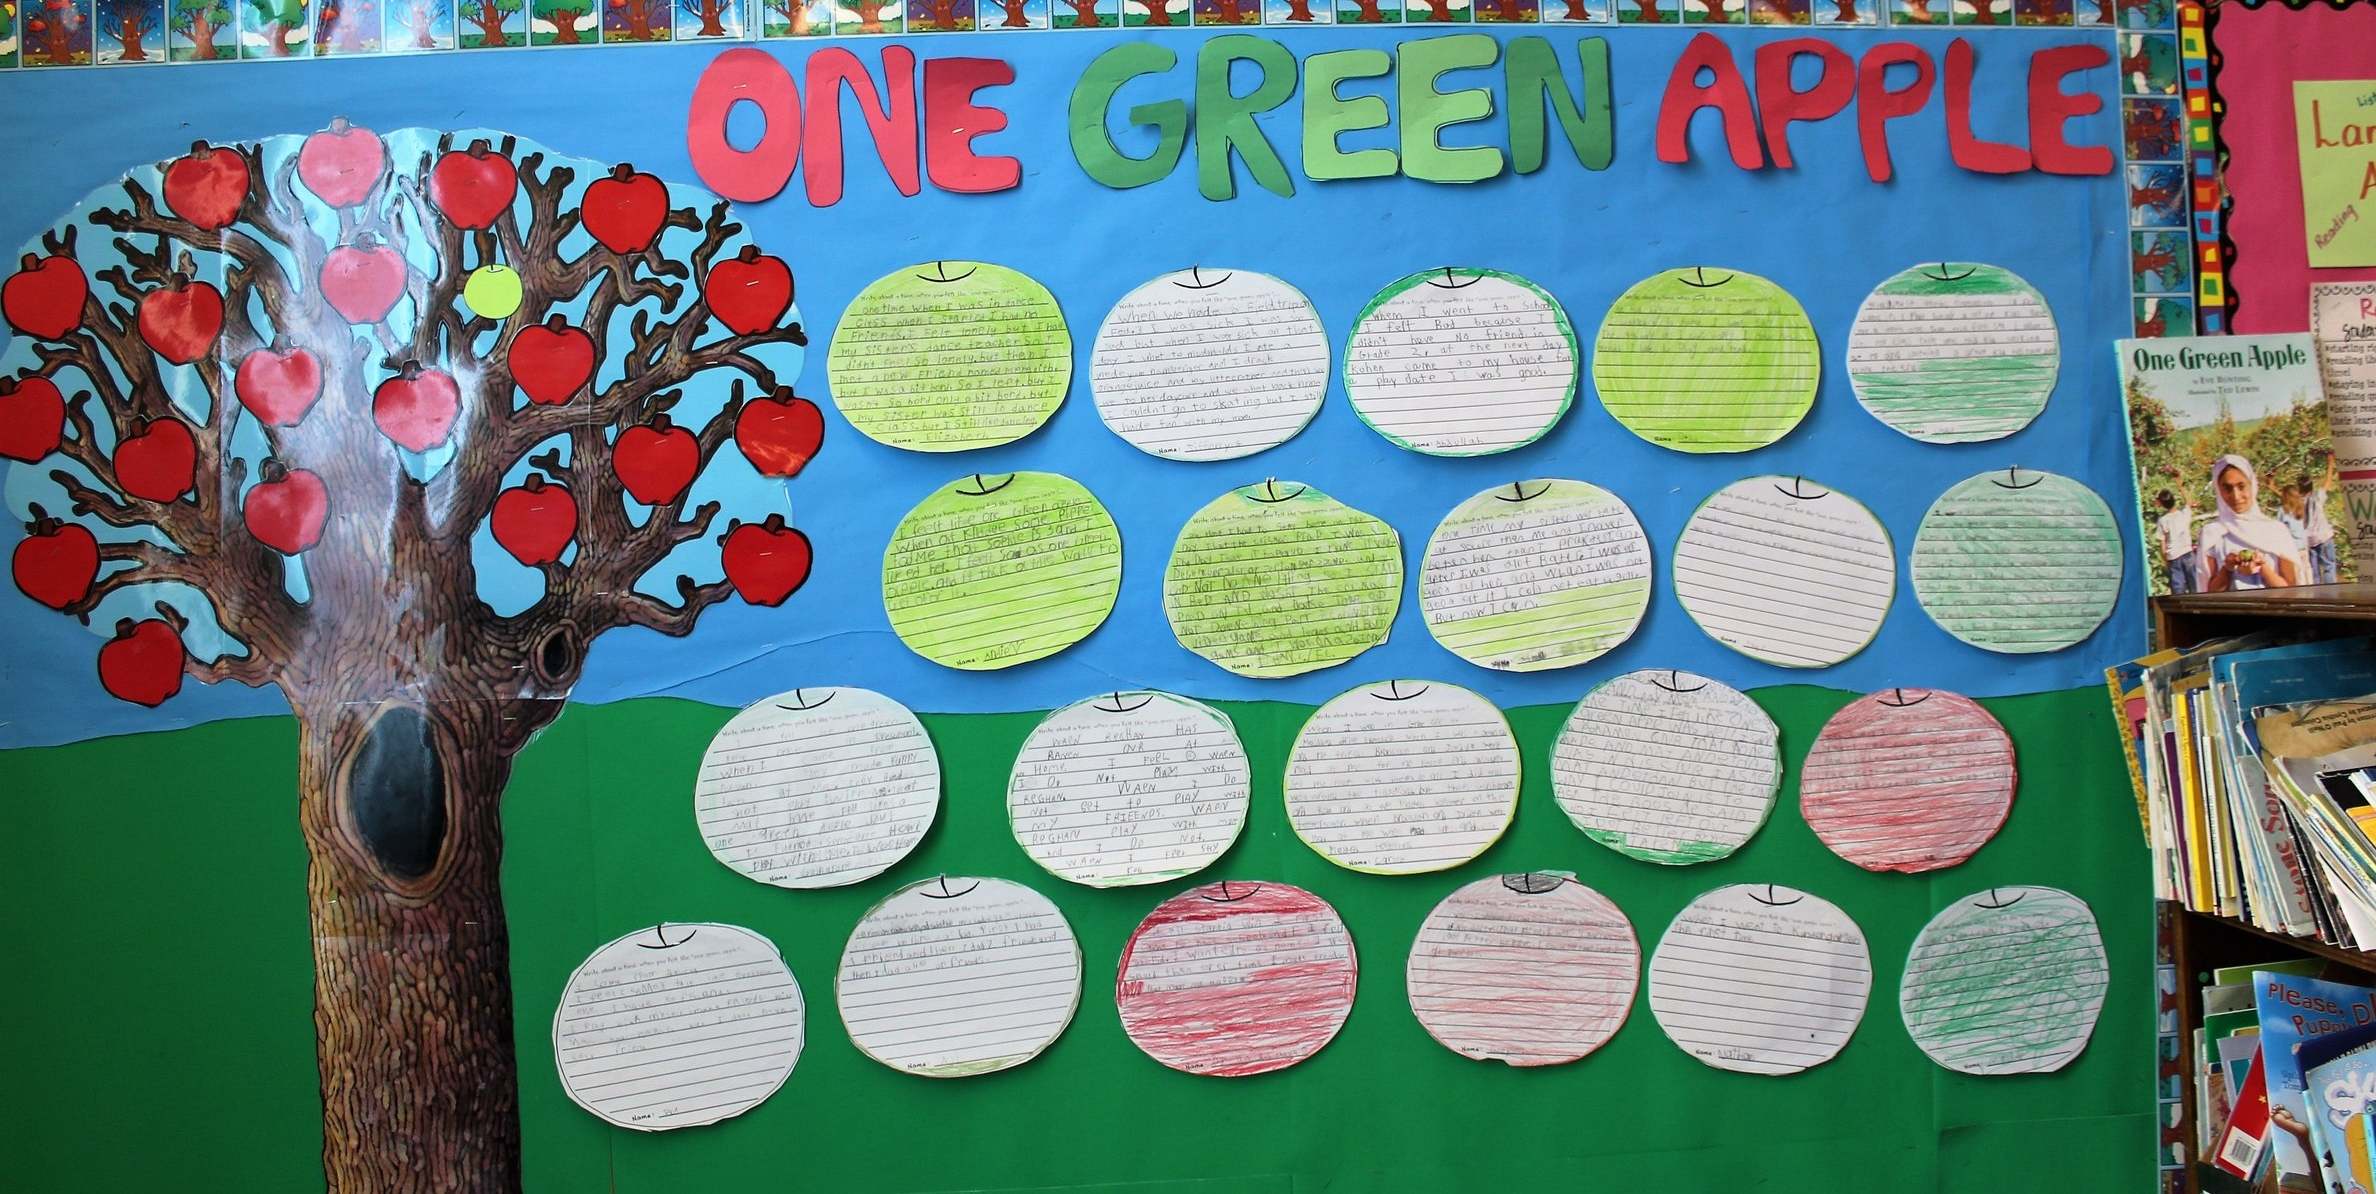 """We read the book One Green Apple, which addresses a child's experience living in a new country where she doesn't speak the language or know the culture. One of my students is a new addition to the class and country and is limited in her knowledge of the English language. Discussion allowed children to better understand how she may feel in our classroom and the importance of their words and actions in showing her acceptance and friendship. We then connected the symbolism of the one green apple being added to all the big red apples to make the cider in the book. Children could all relate to the theme of being left out, so they wrote about a time when they felt like """"one green apple"""".  This activity connects to global citizenship because it helps children to relate their experiences to those of another child from a different culture. Many students didn't think they could relate to the new student's situation, however, when looking at the common theme of feeling """"left out"""", they were able to make personal connections. It also helps children to think critically about the ways that people from all over the world are the same and different and that, more often than not, we can make a similar connection to their thoughts, feelings, and experiences."""